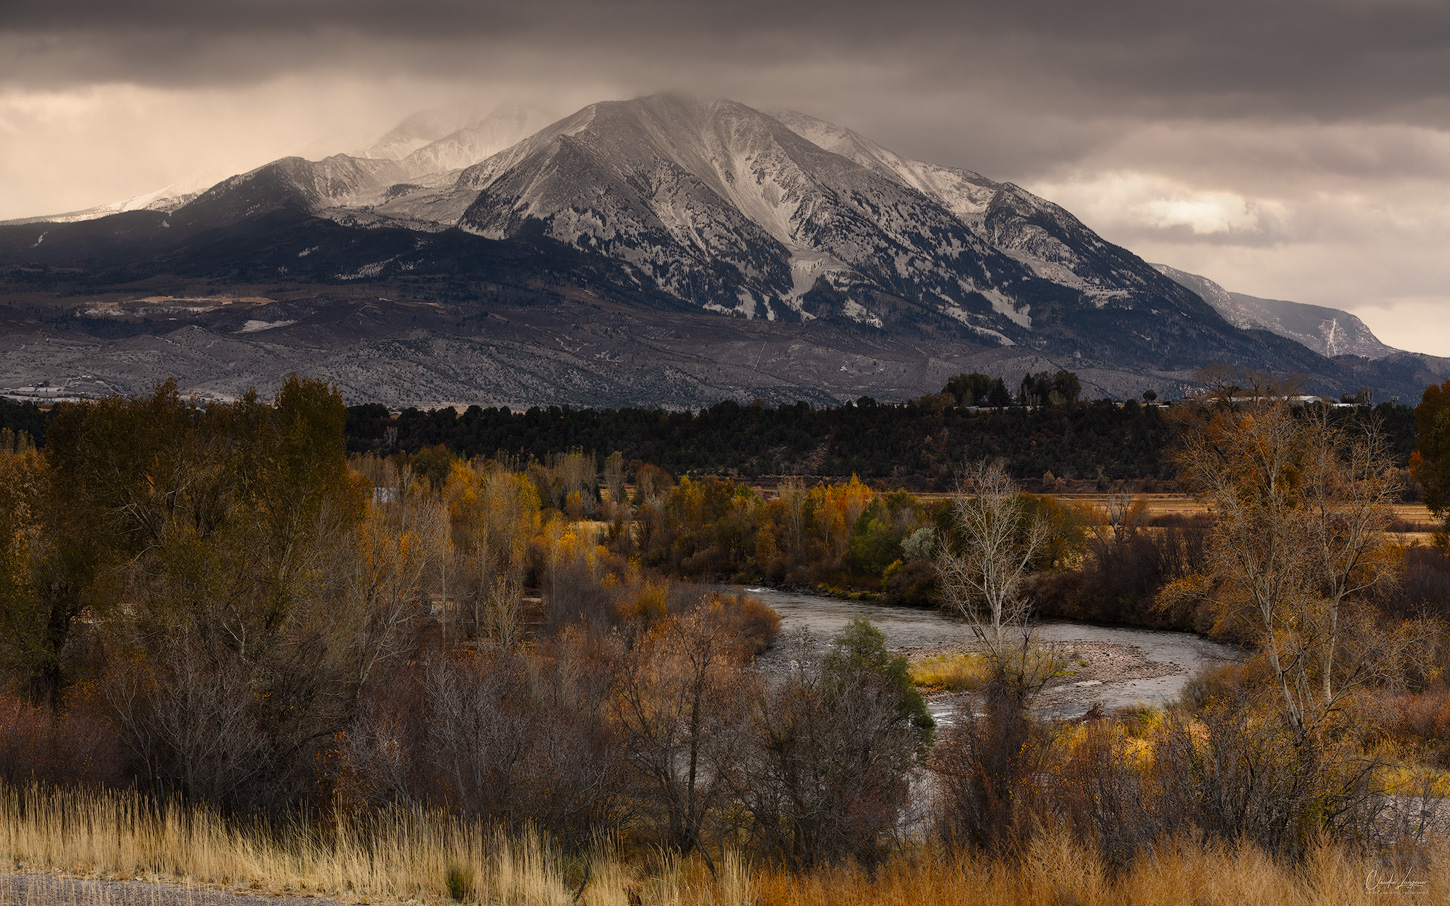 Mount Sopris covered in snow in Carbondale, Colorado.